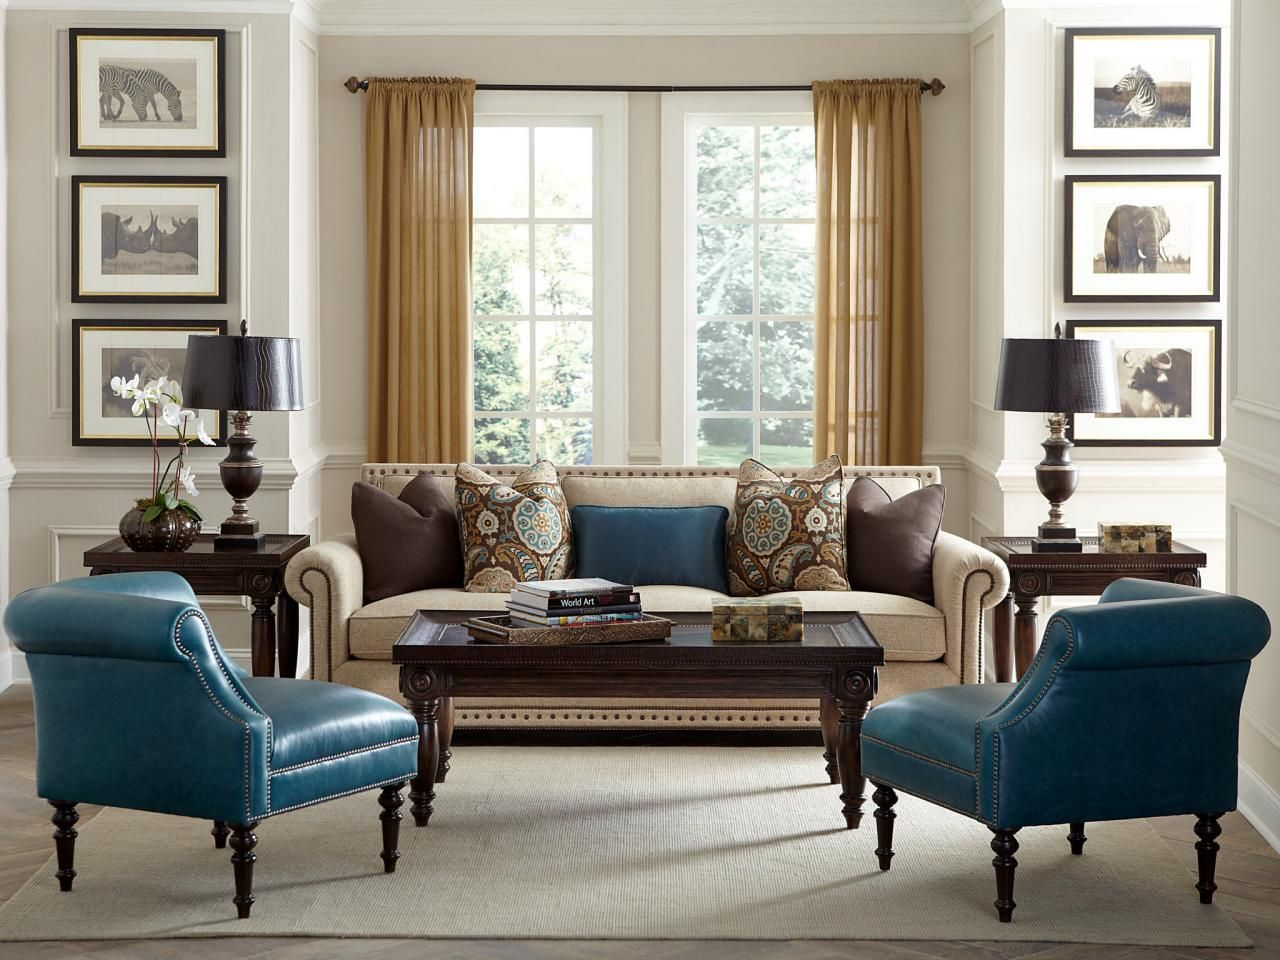 Transitional Living Room With Teal Corner Chairs Teal Living Rooms Brown Living Room Decor Transitional Living Rooms #teal #chairs #for #living #room